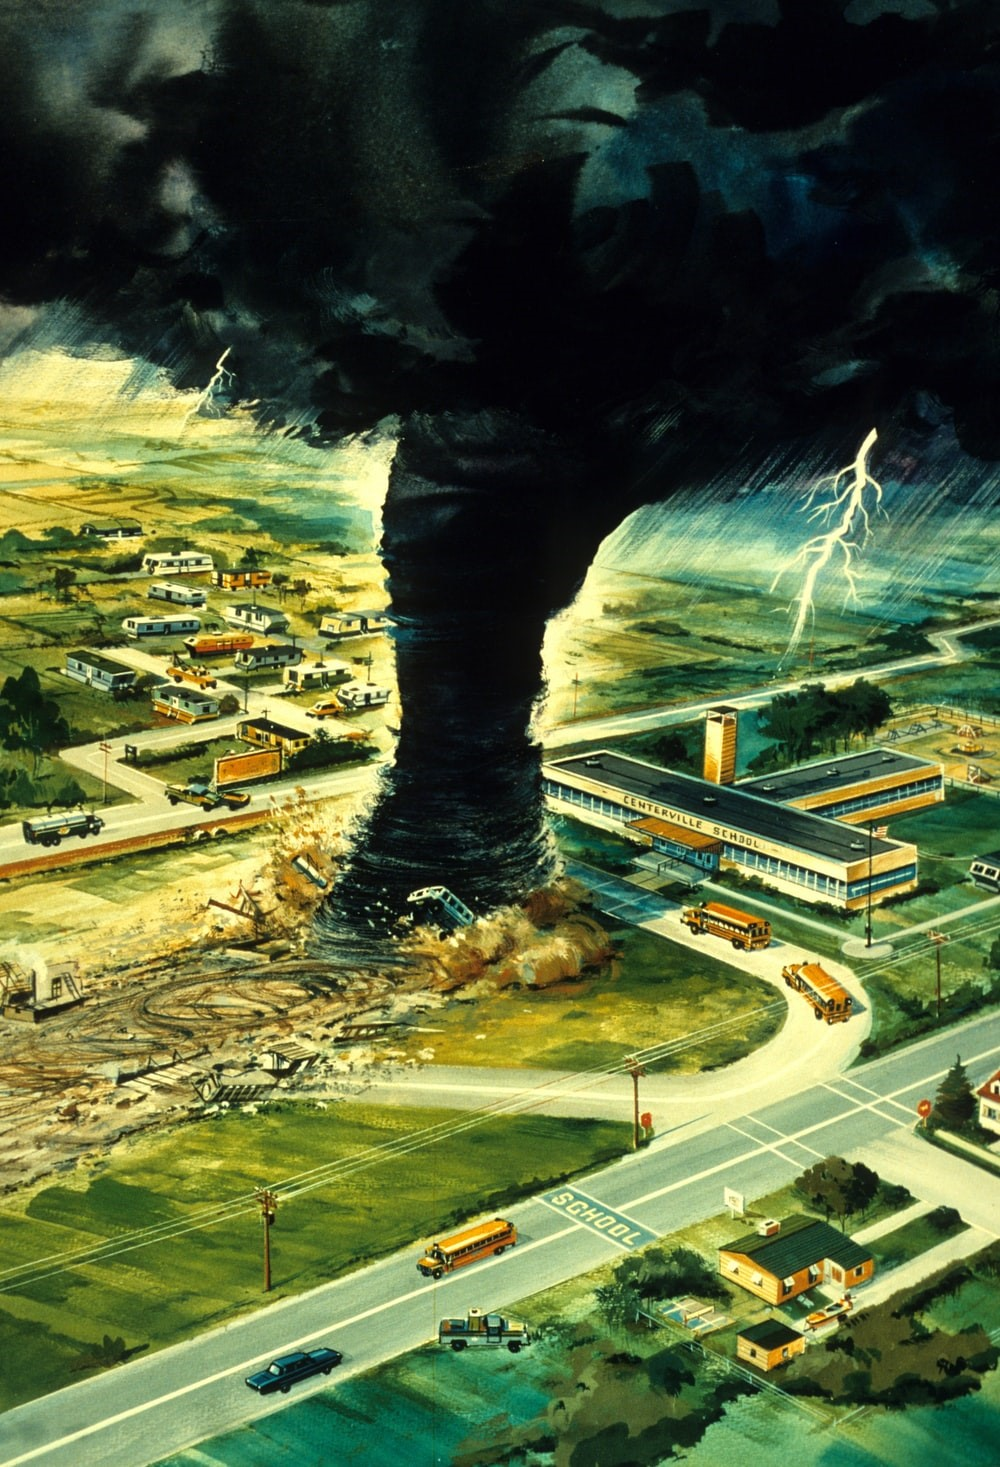 Depiction of a Tornado Heading Toward a School